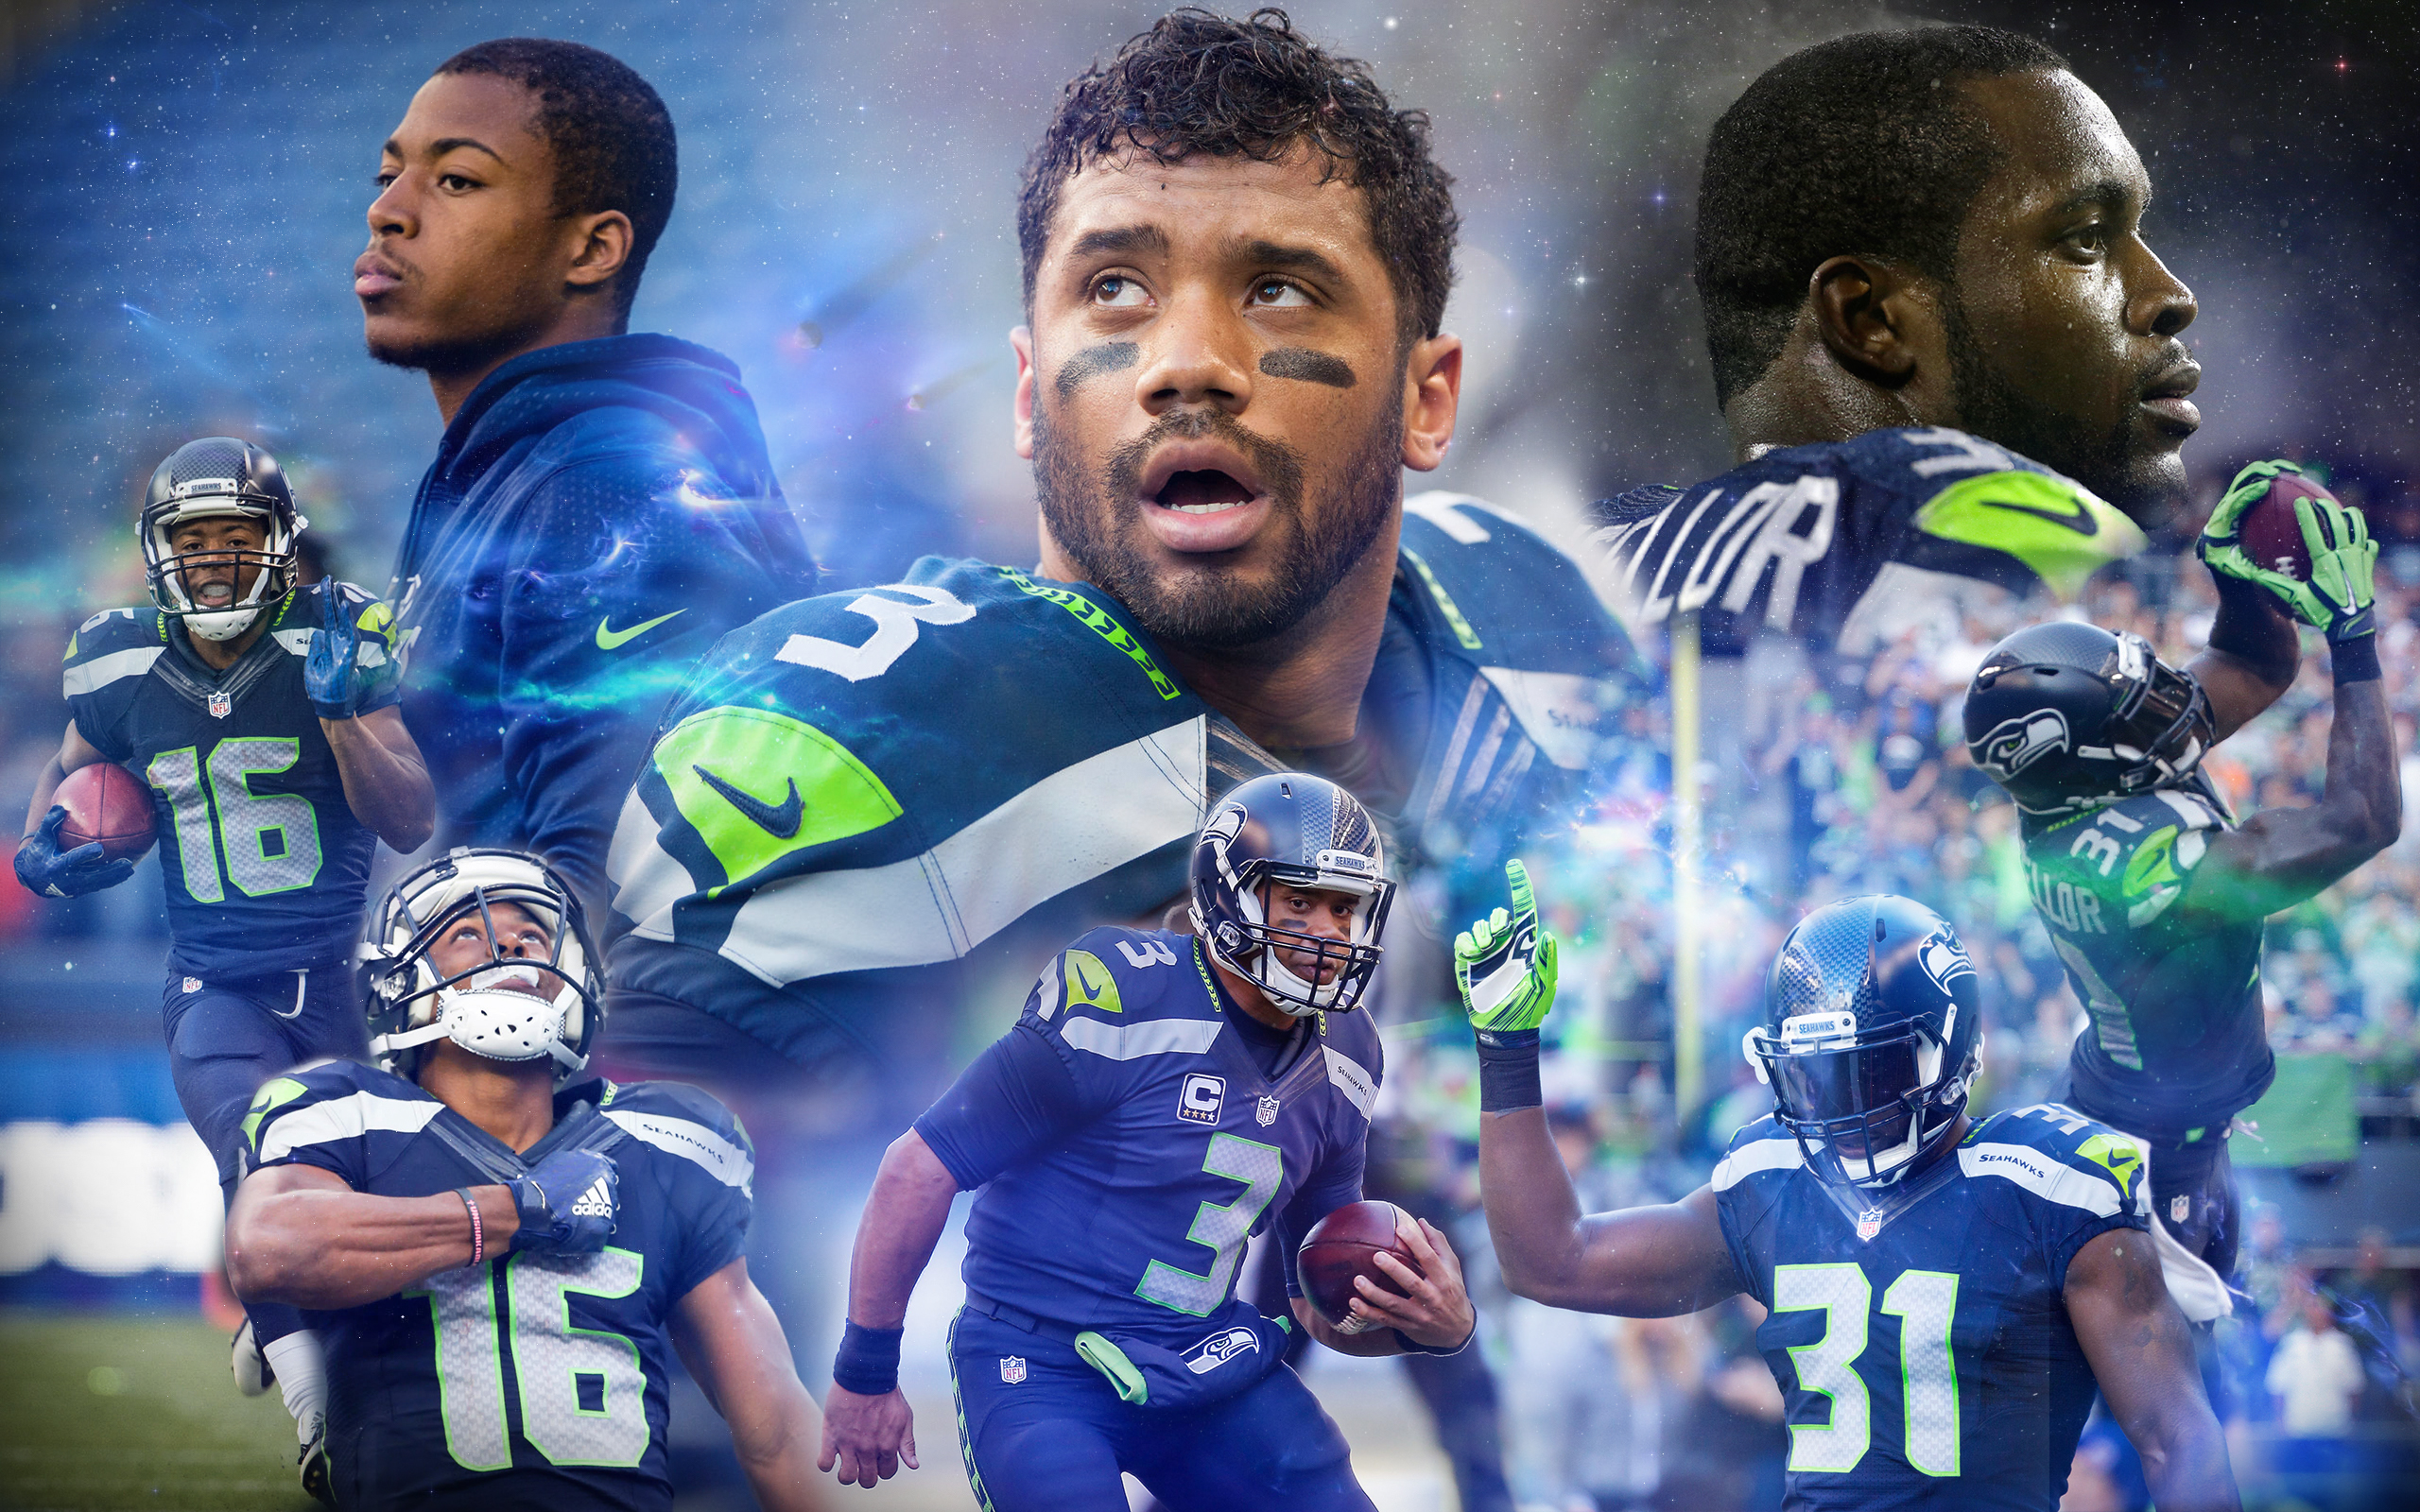 Seahawks Wallpaper edit i did for a friend photos are not my own 2560x1600